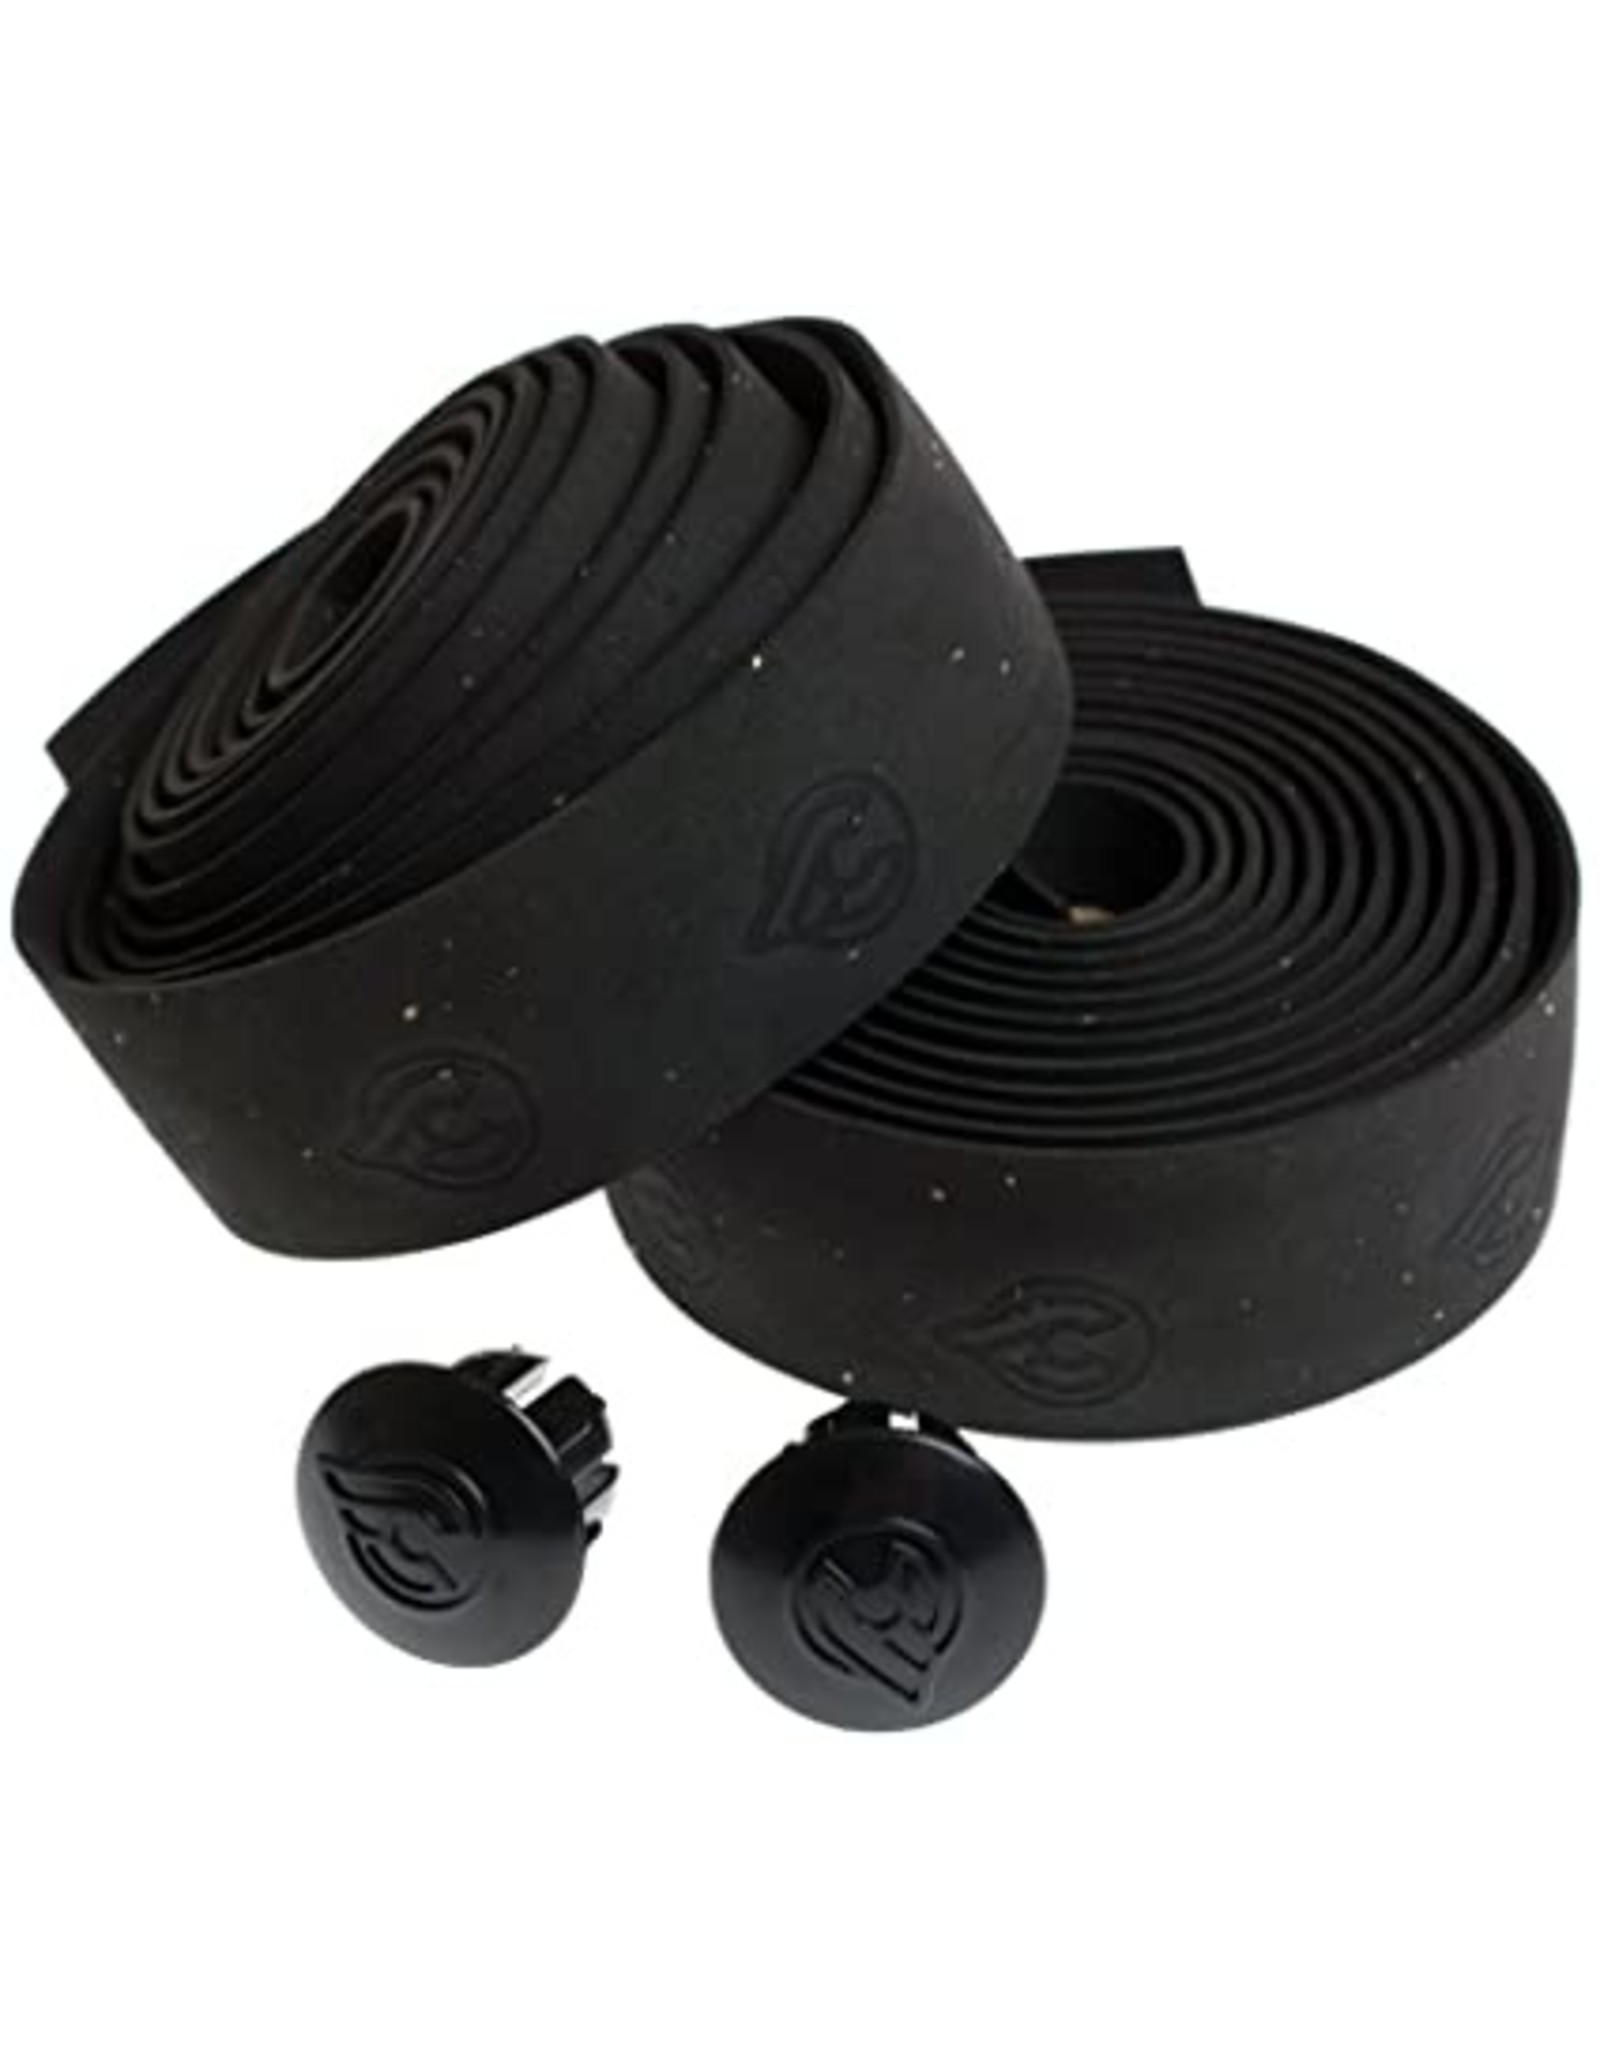 Cinelli Cinelli Cork Handlebar Tape, Solid - Black